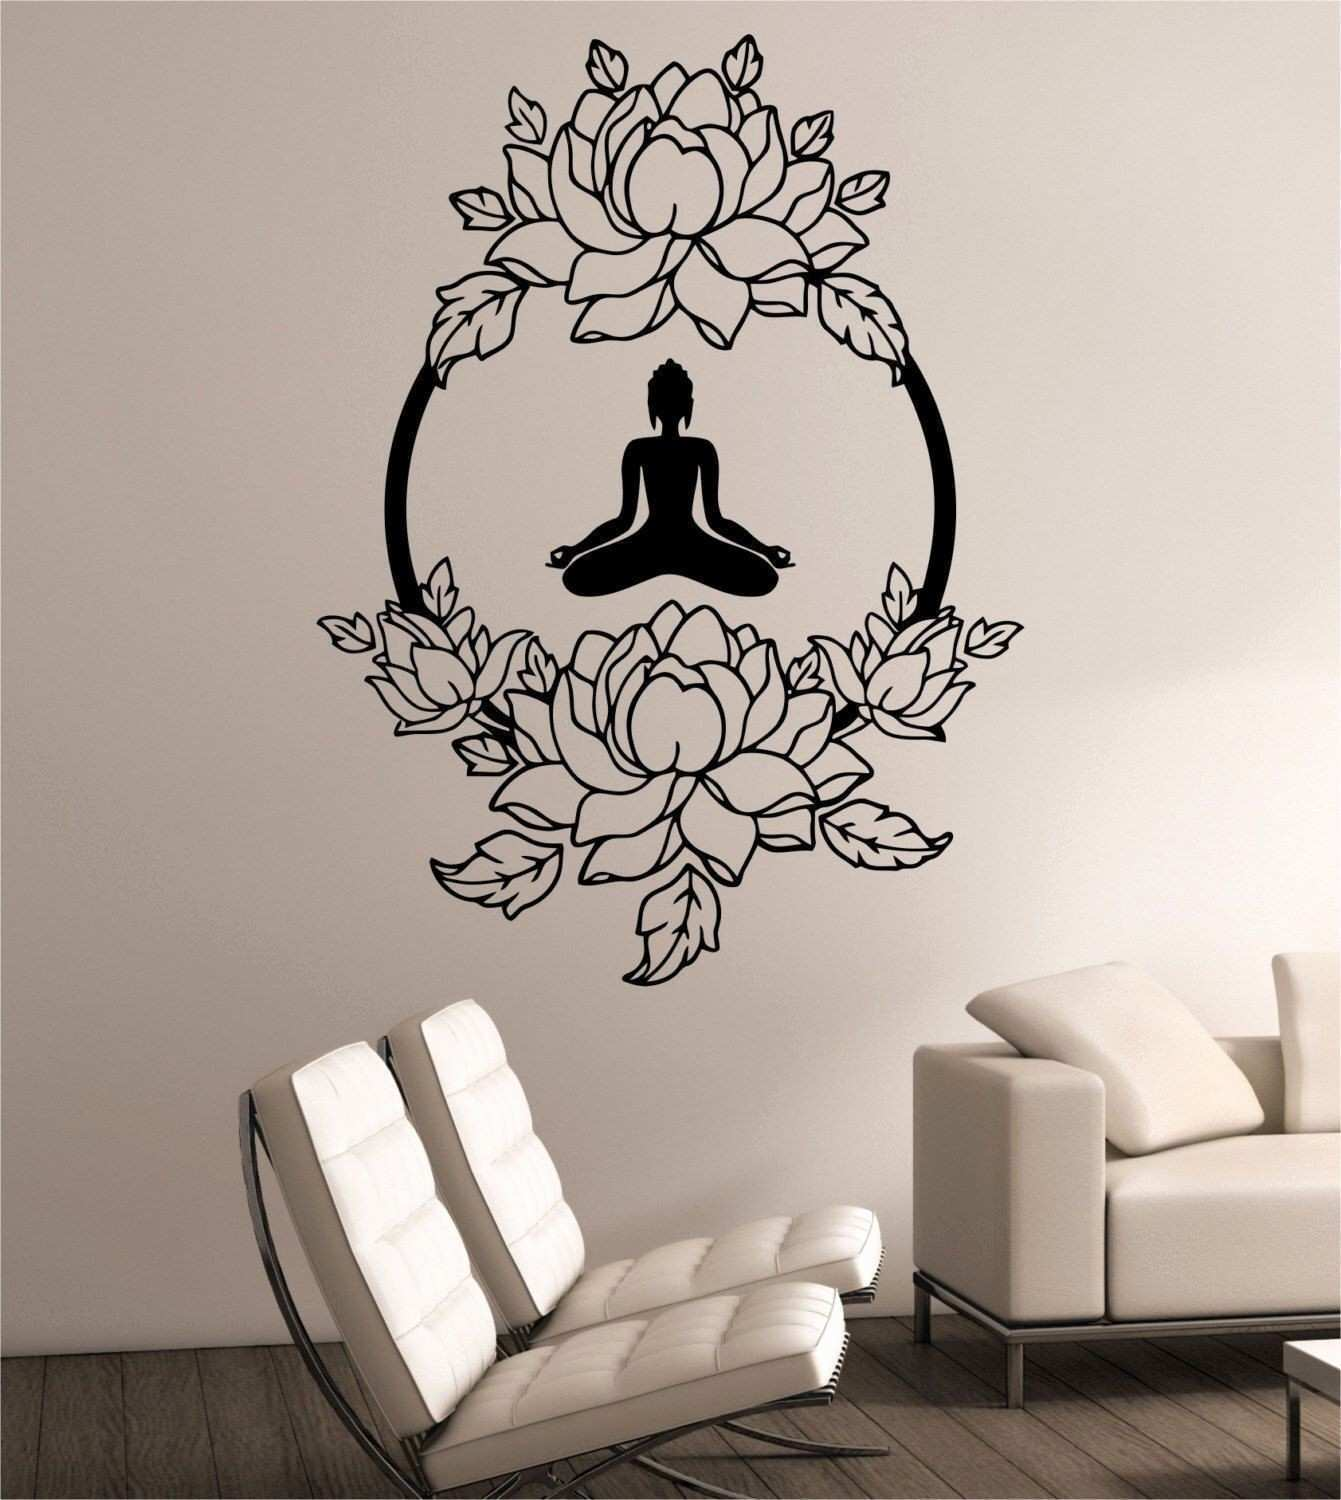 Bedroom Wall Wall Quotes for Bedroom Tag Metal Decor 0d Modern House